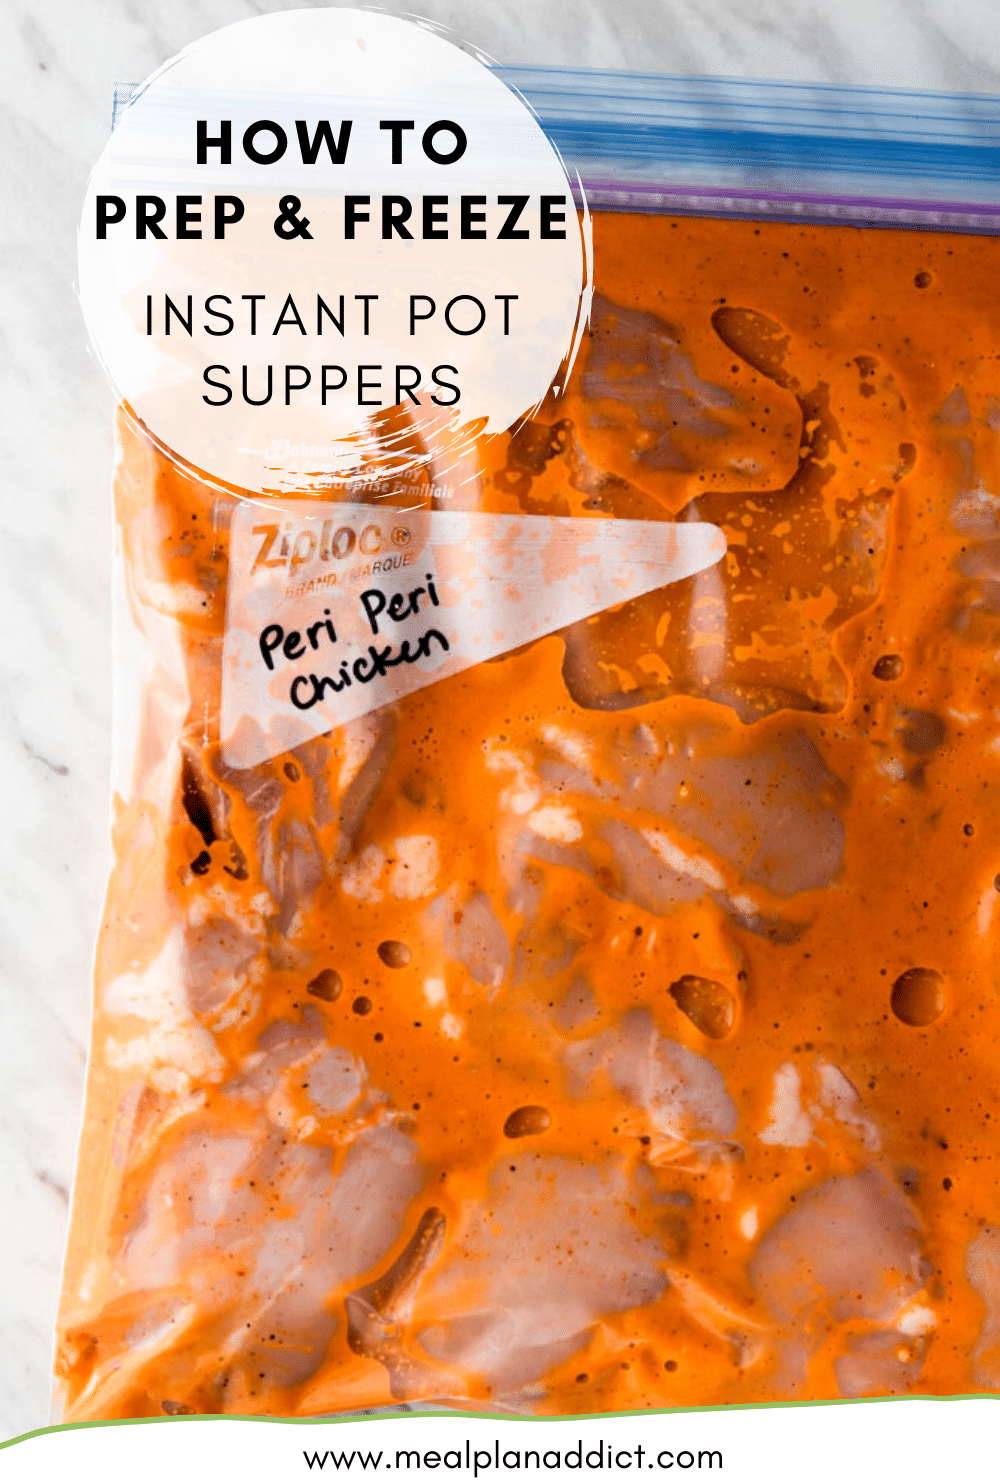 How to prep & freeze Instant Pot suppers